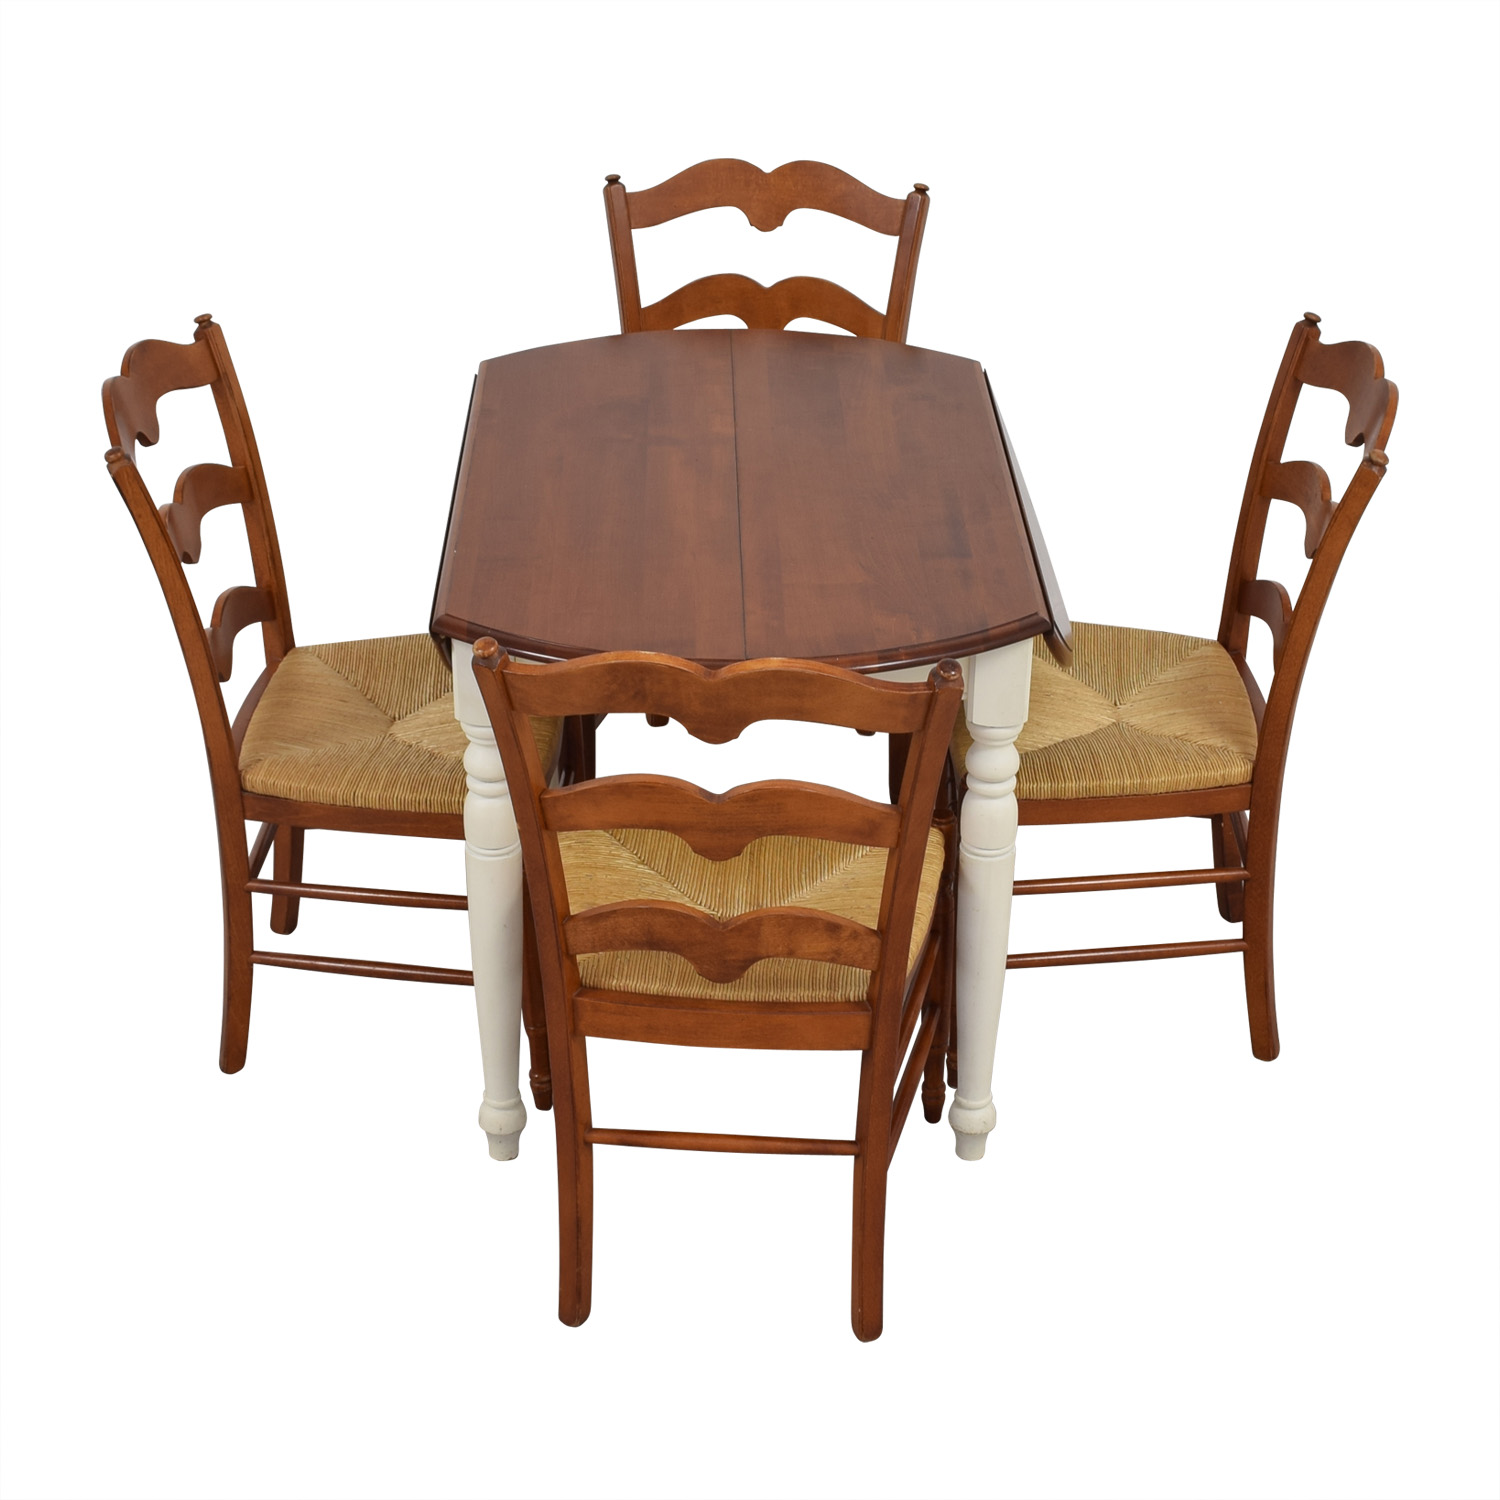 Multicolored Wooden Dining Set with Leaf Extension second hand